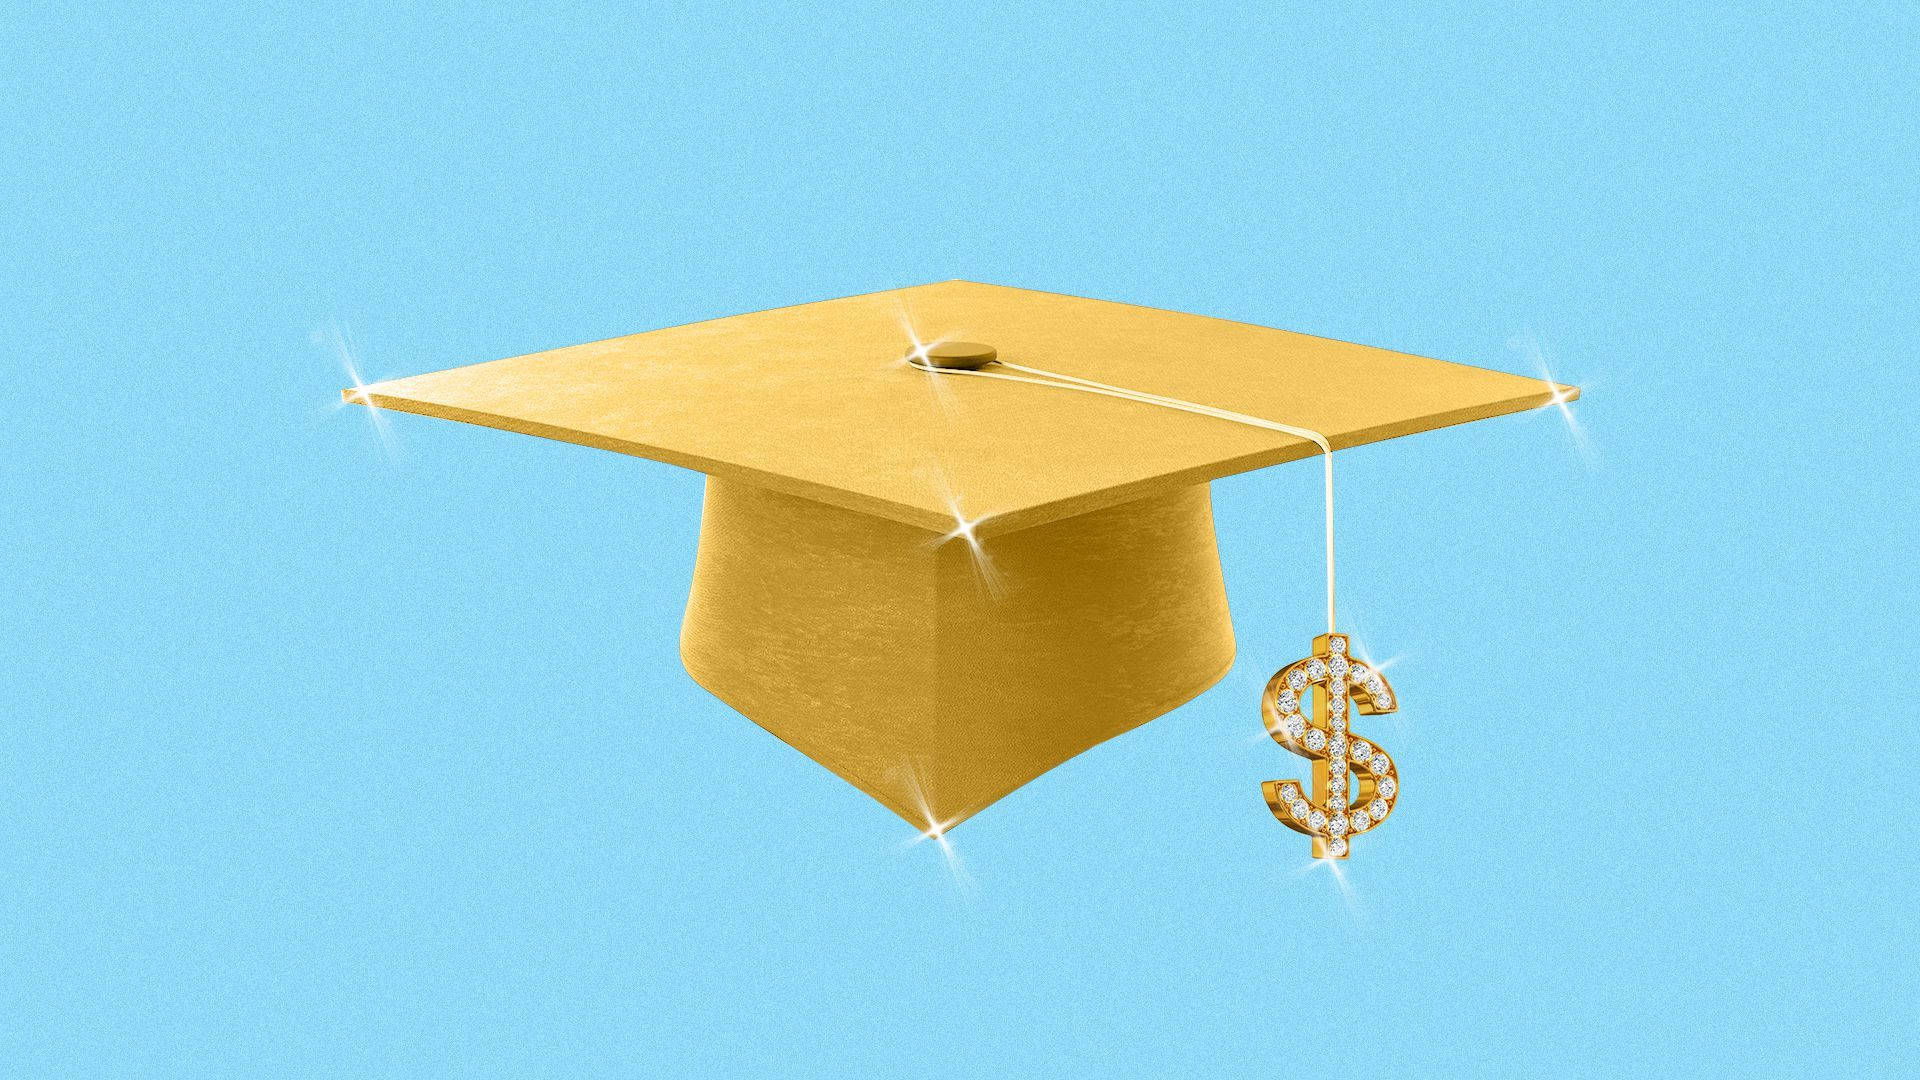 An illustration of a graduation cap with a dollar sign at the end of the tassle.